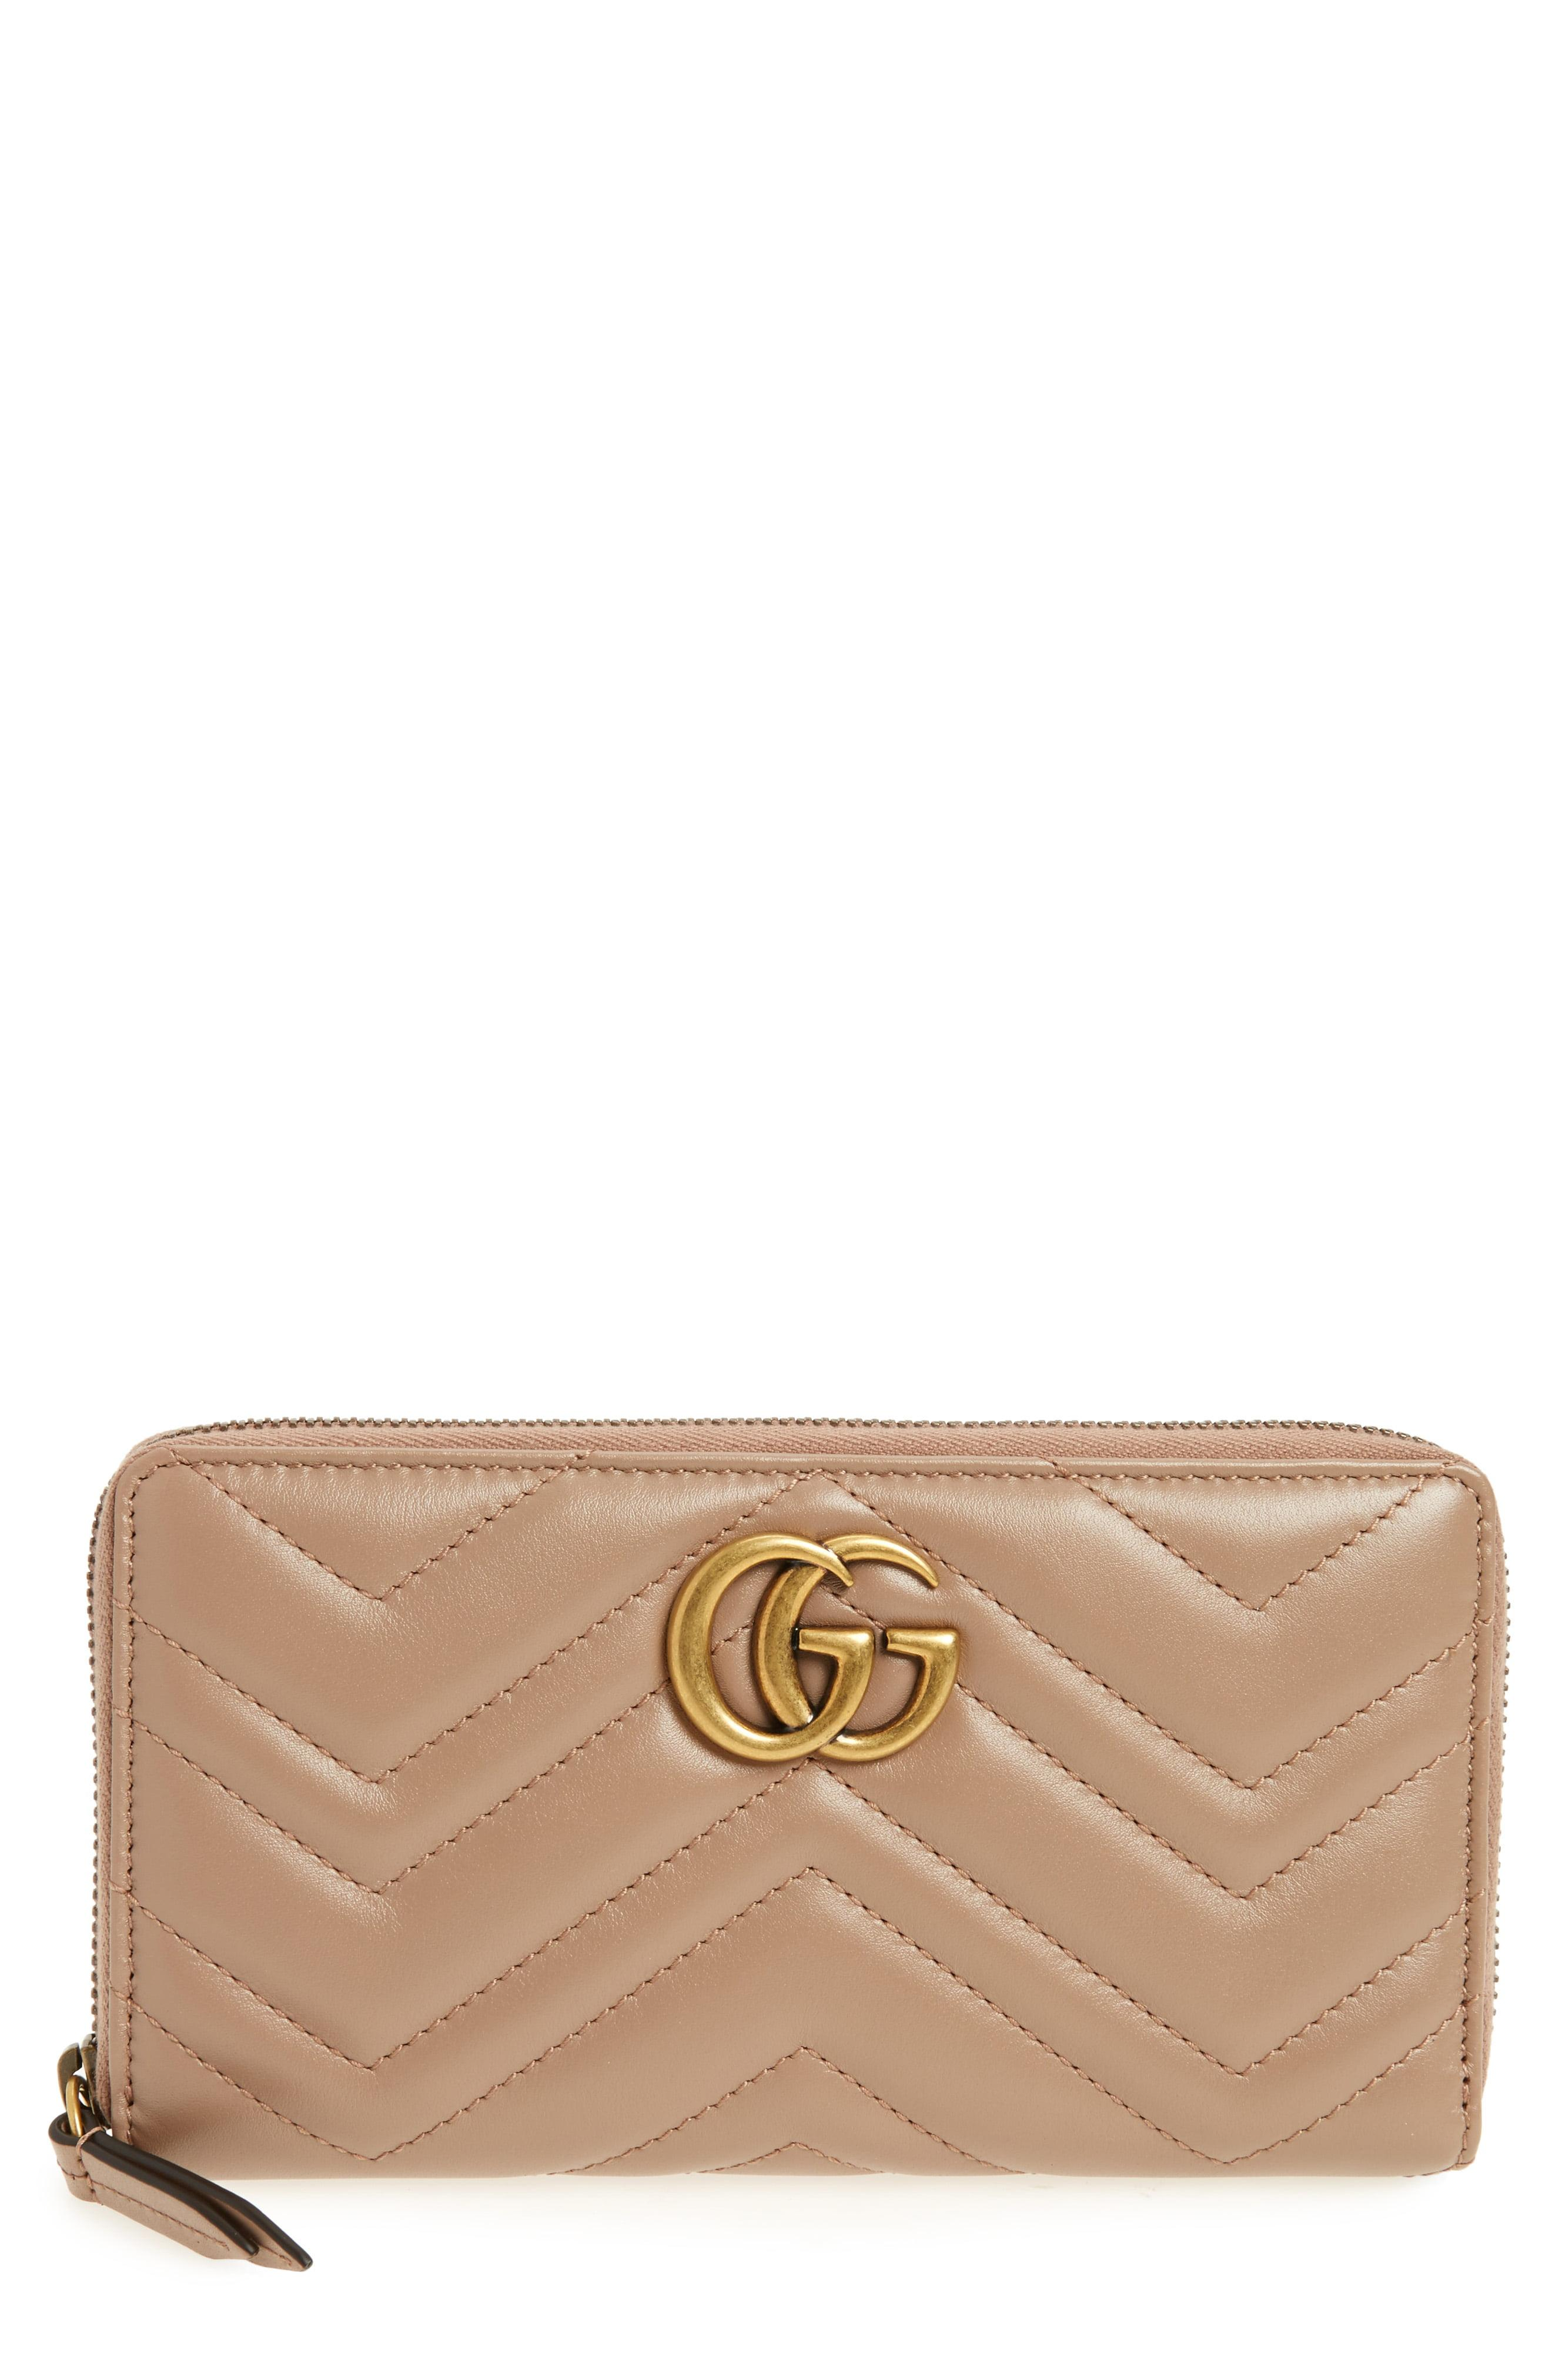 ab4967303 Lyst - Gucci Gg Marmont Matelasse Leather Zip-around Wallet in Pink